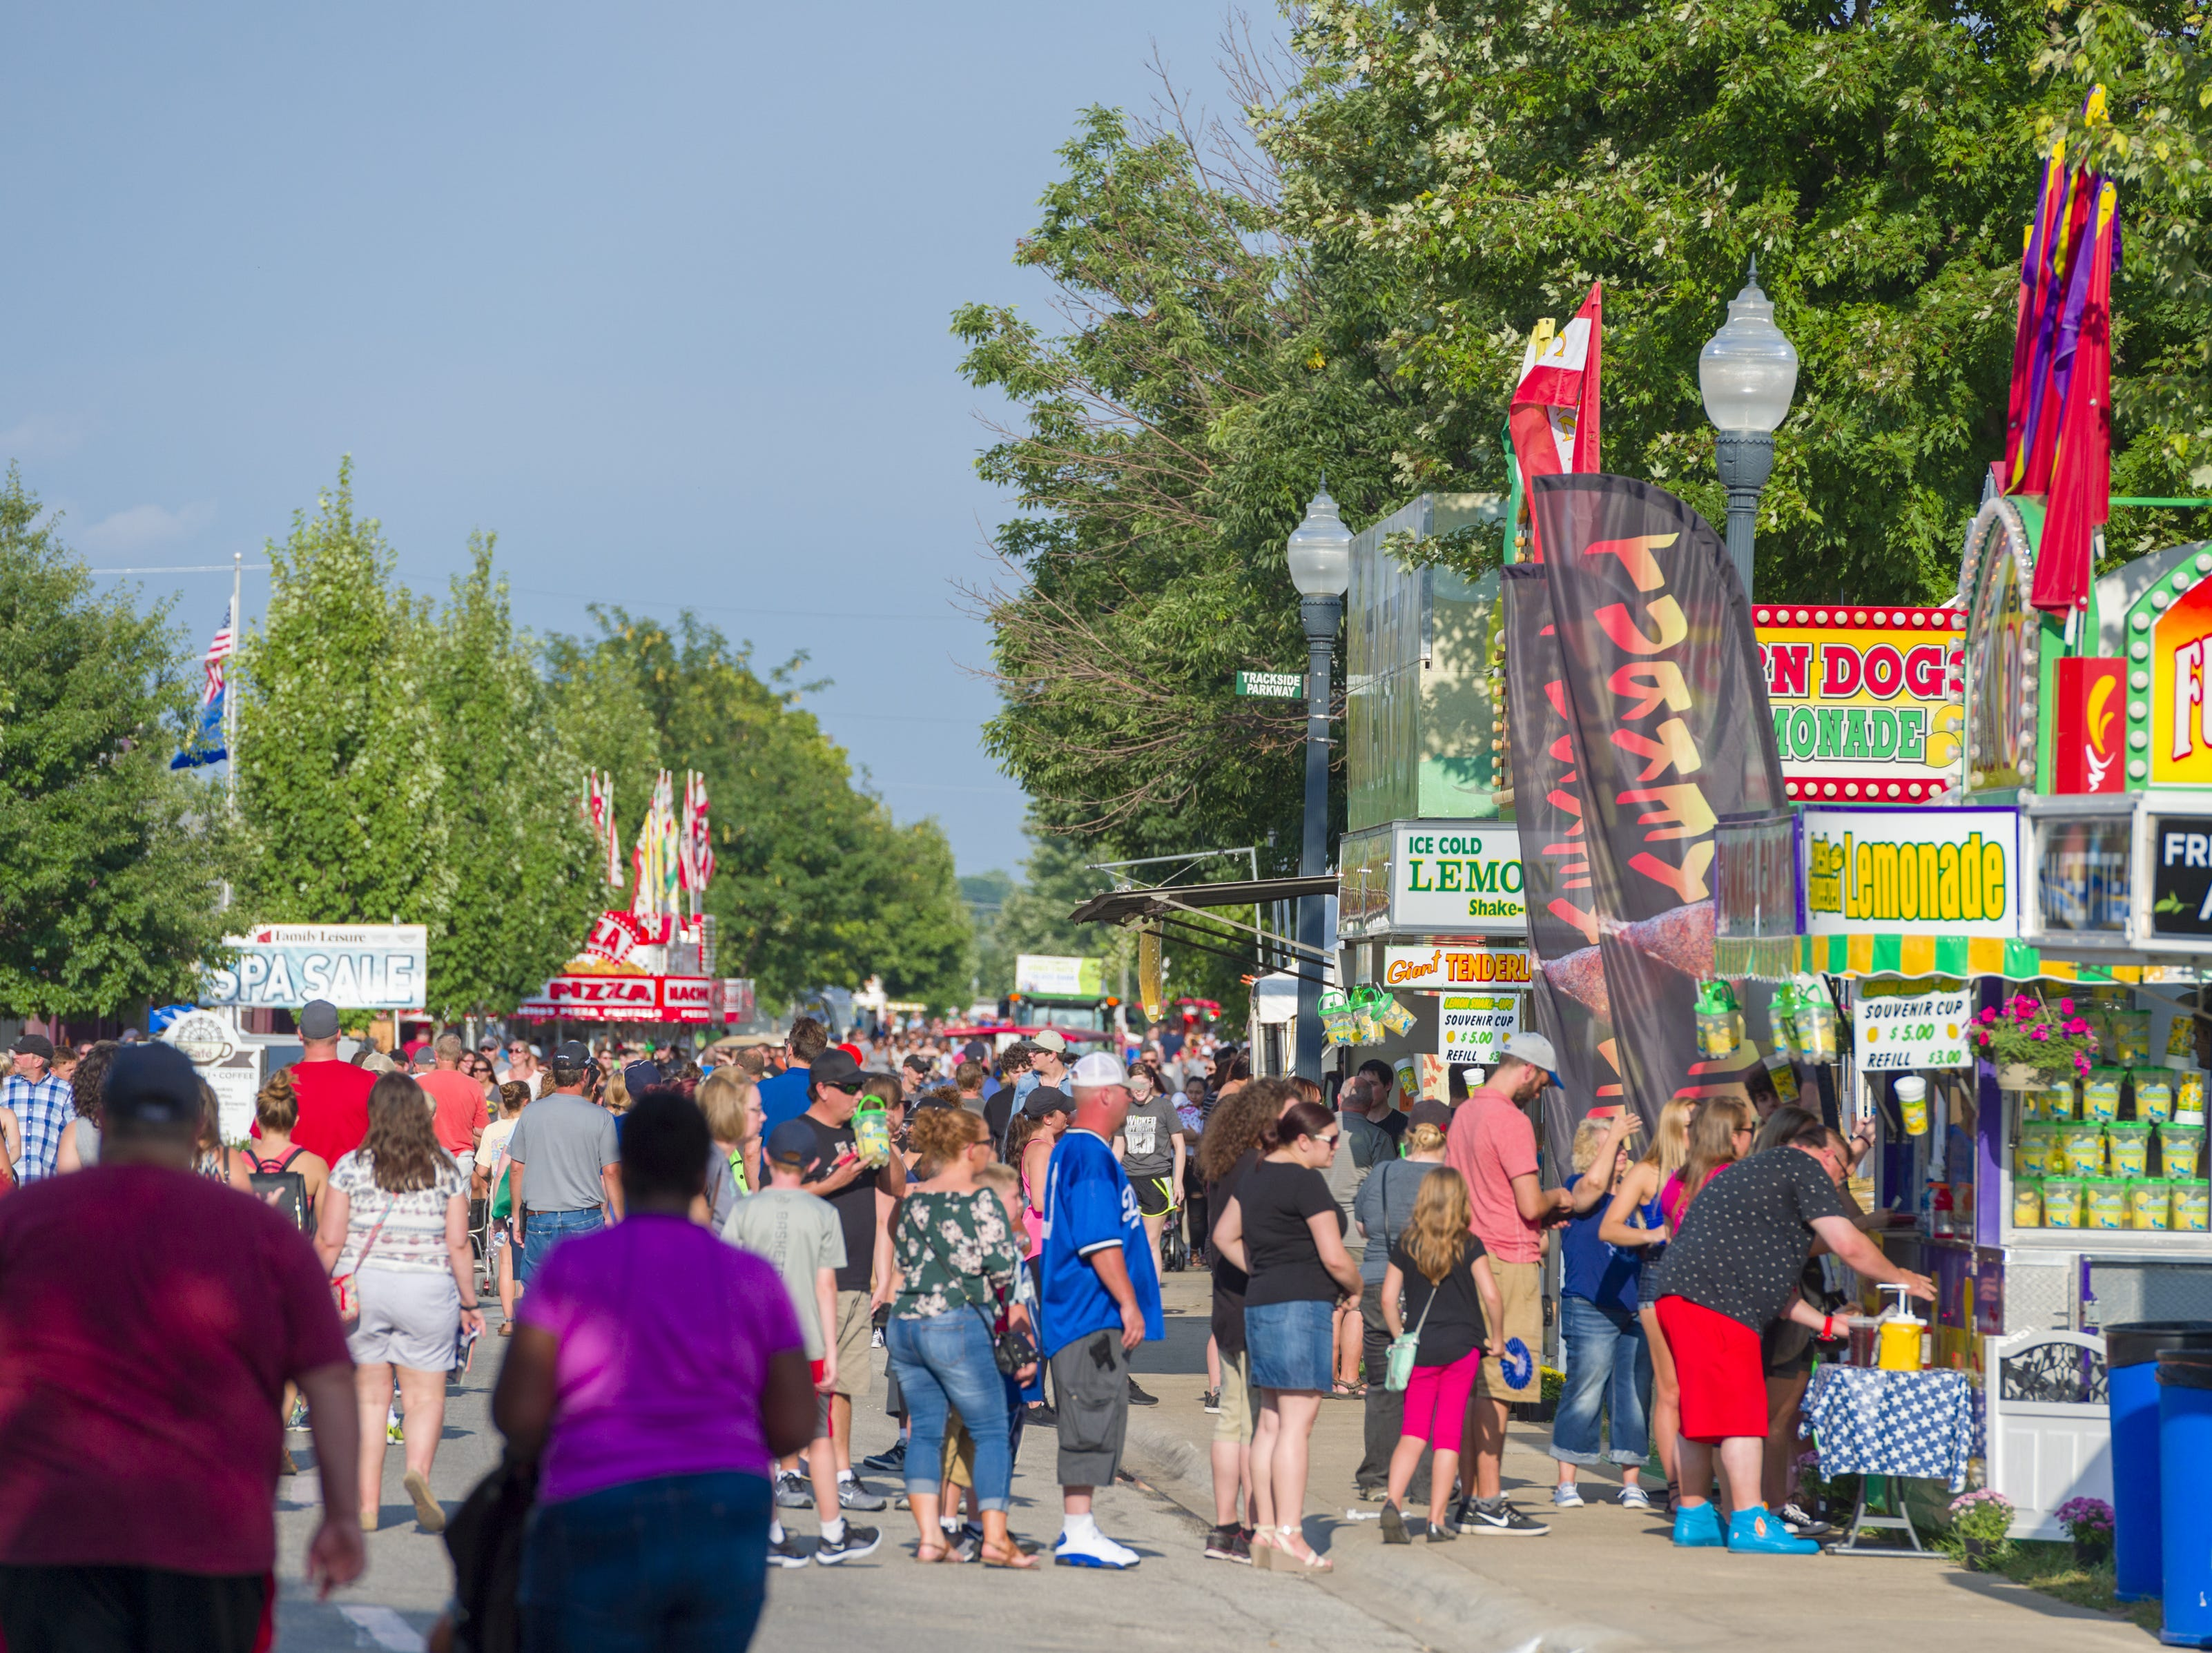 Fair goers line up at the various food vendors at the Indiana State Fair, Friday, Aug. 10, 2018, on the Chevrolet Free Stage.